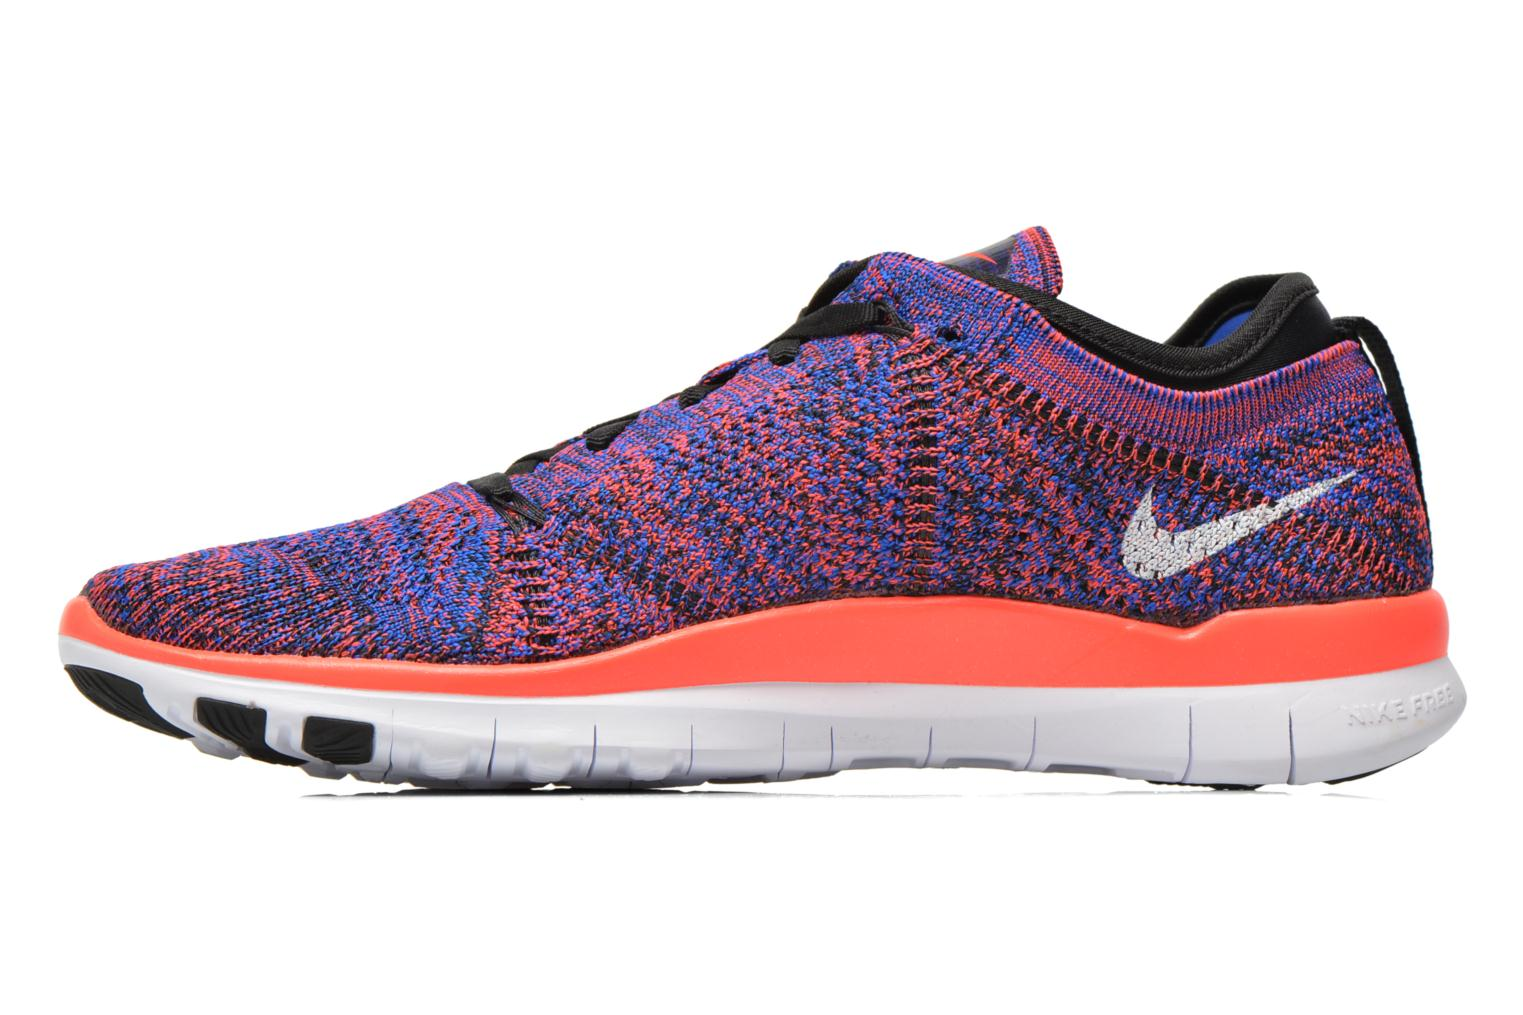 Chaussures de sport Nike Wmns Nike Free Tr Flyknit Multicolore vue face